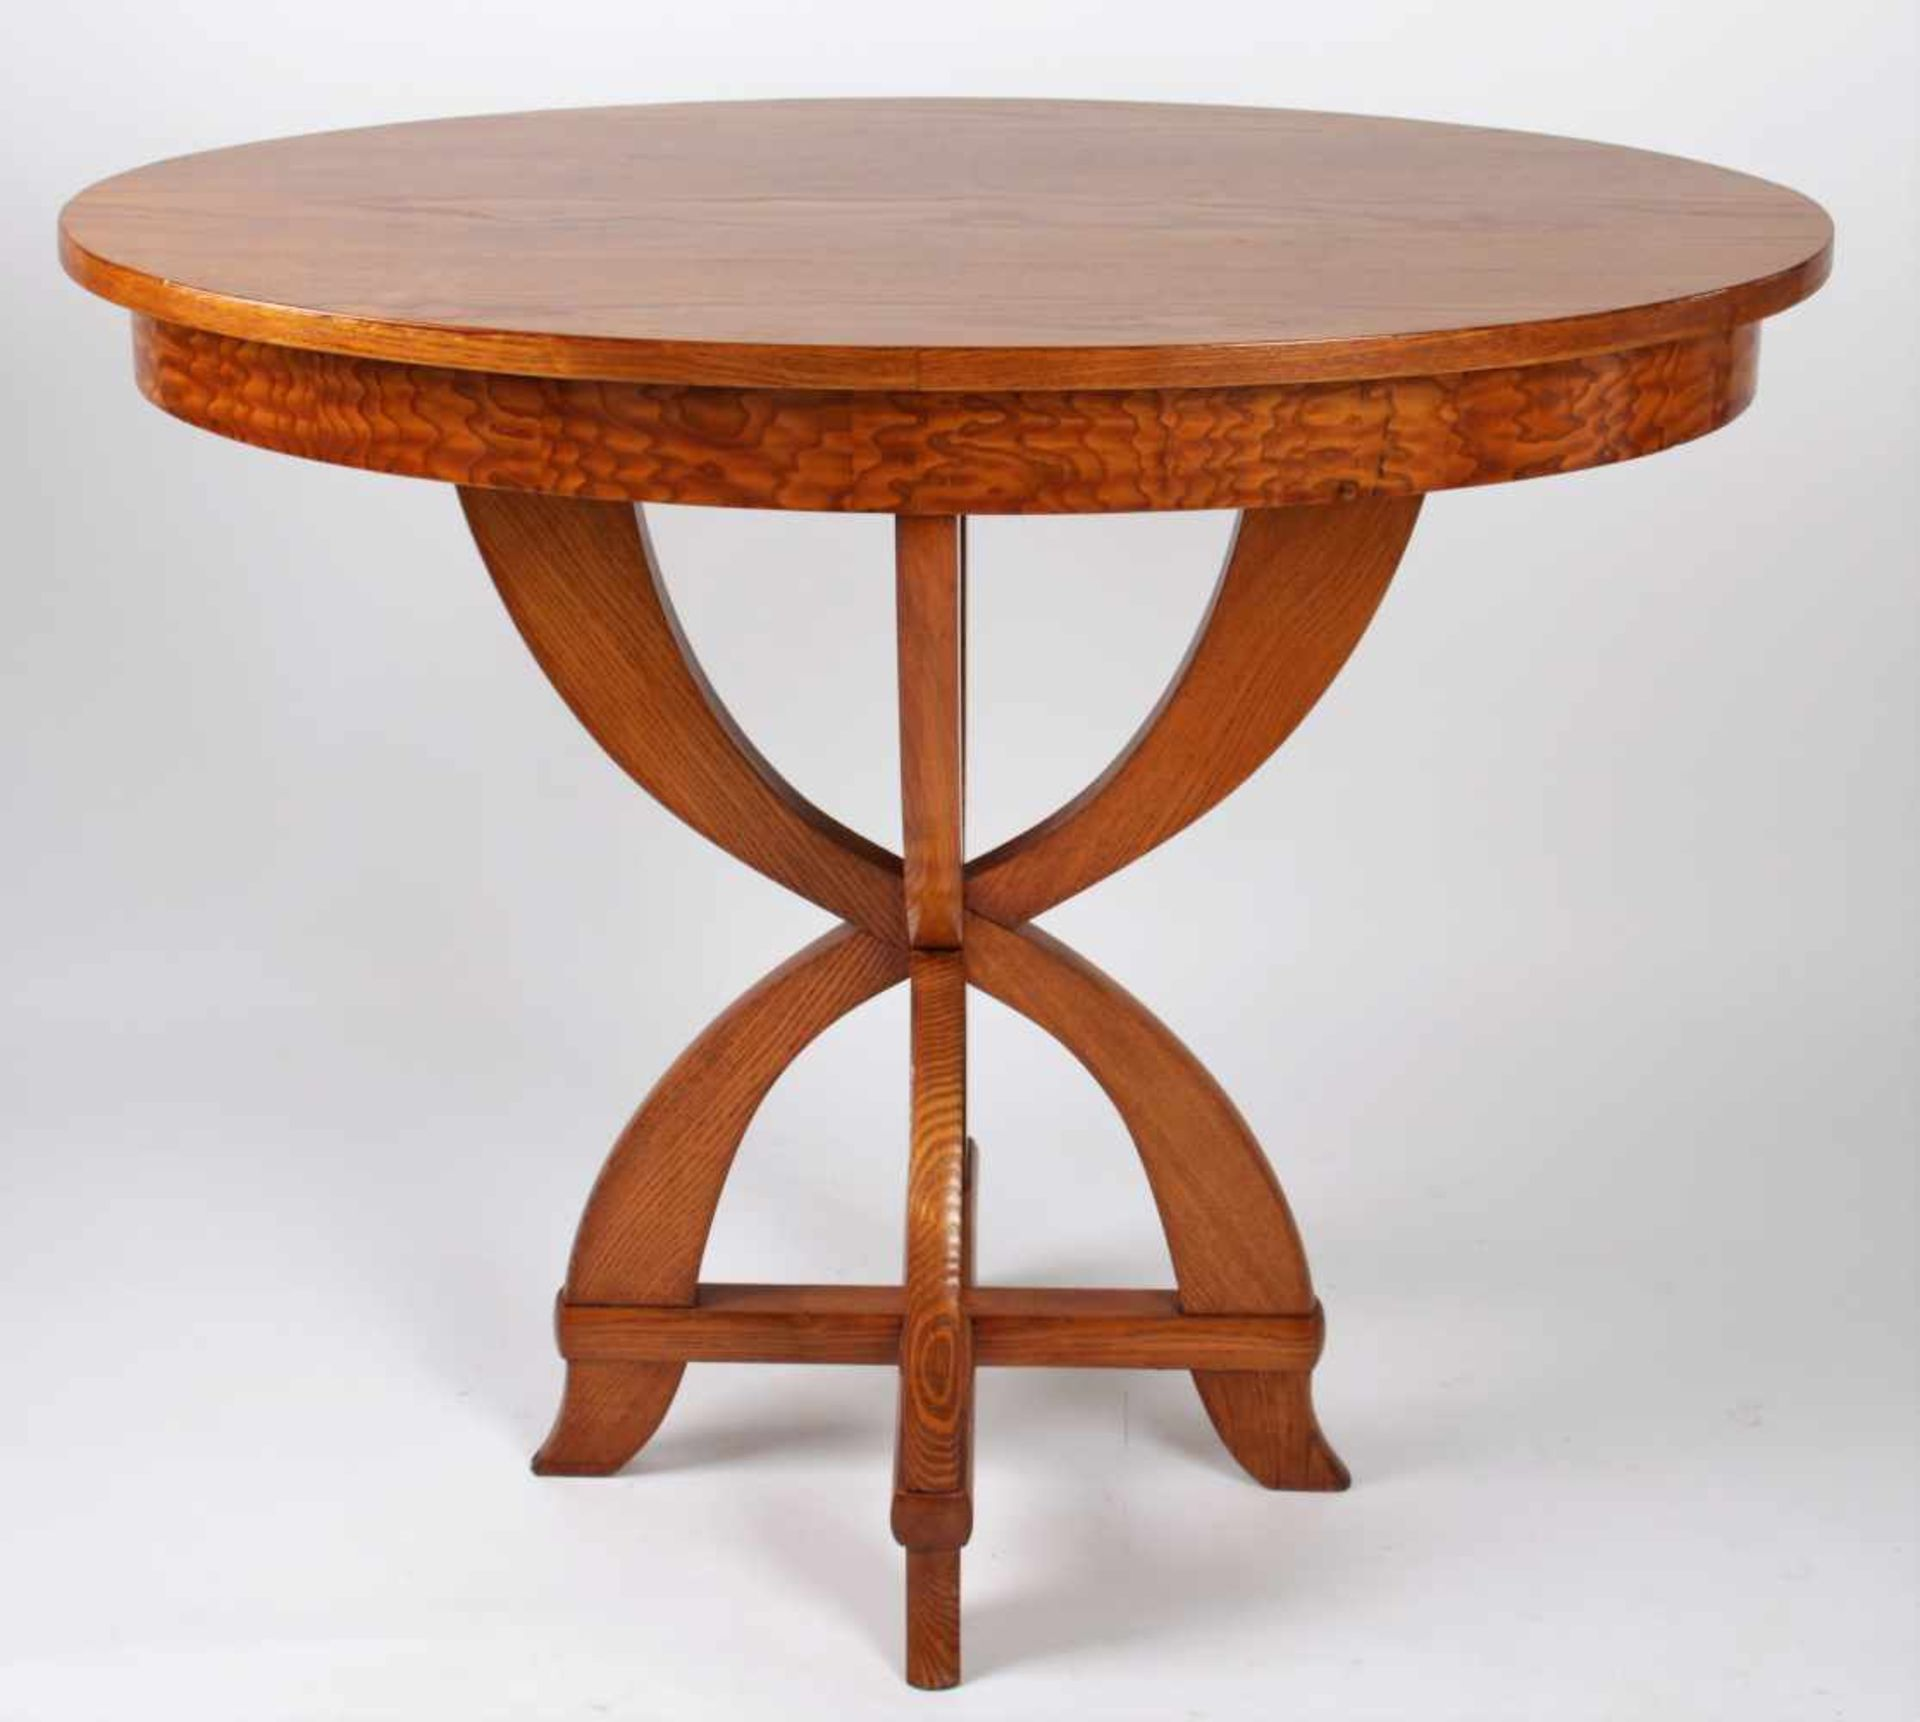 Art Deco oval table Czechoslovakia, 2nd quarter of the 20th century, table with an oval surface,